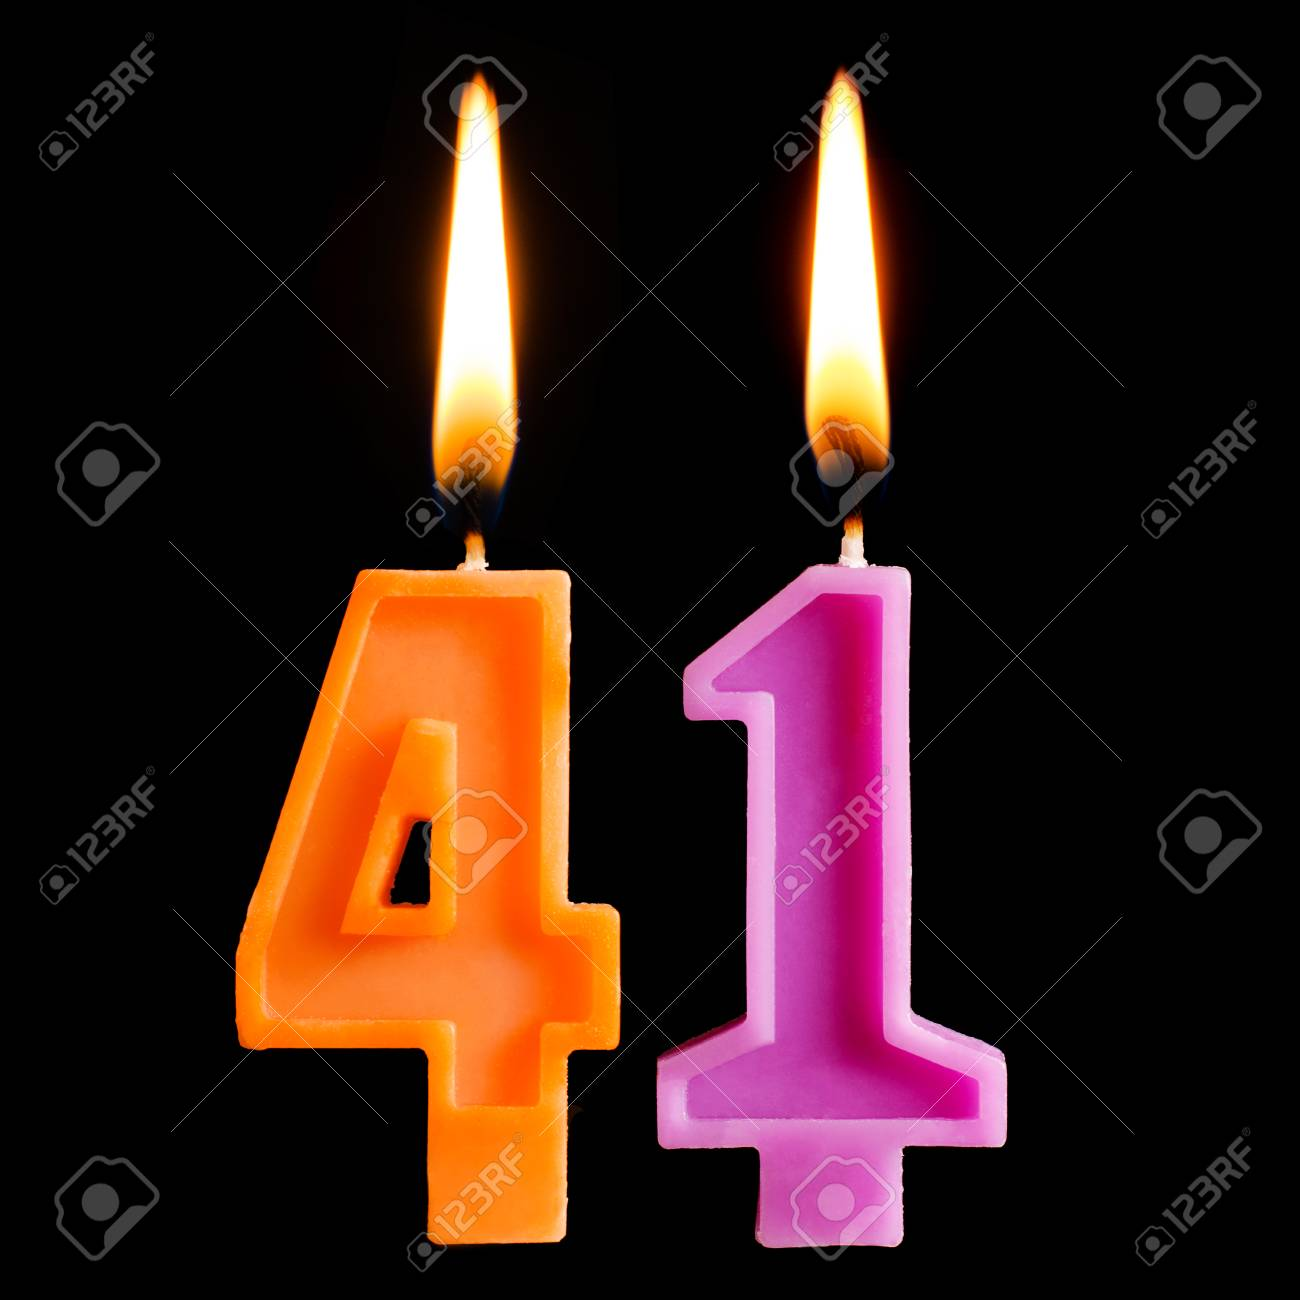 Burning Birthday Candles In The Form Of 41 Forty One For Cake Isolated On Black Background